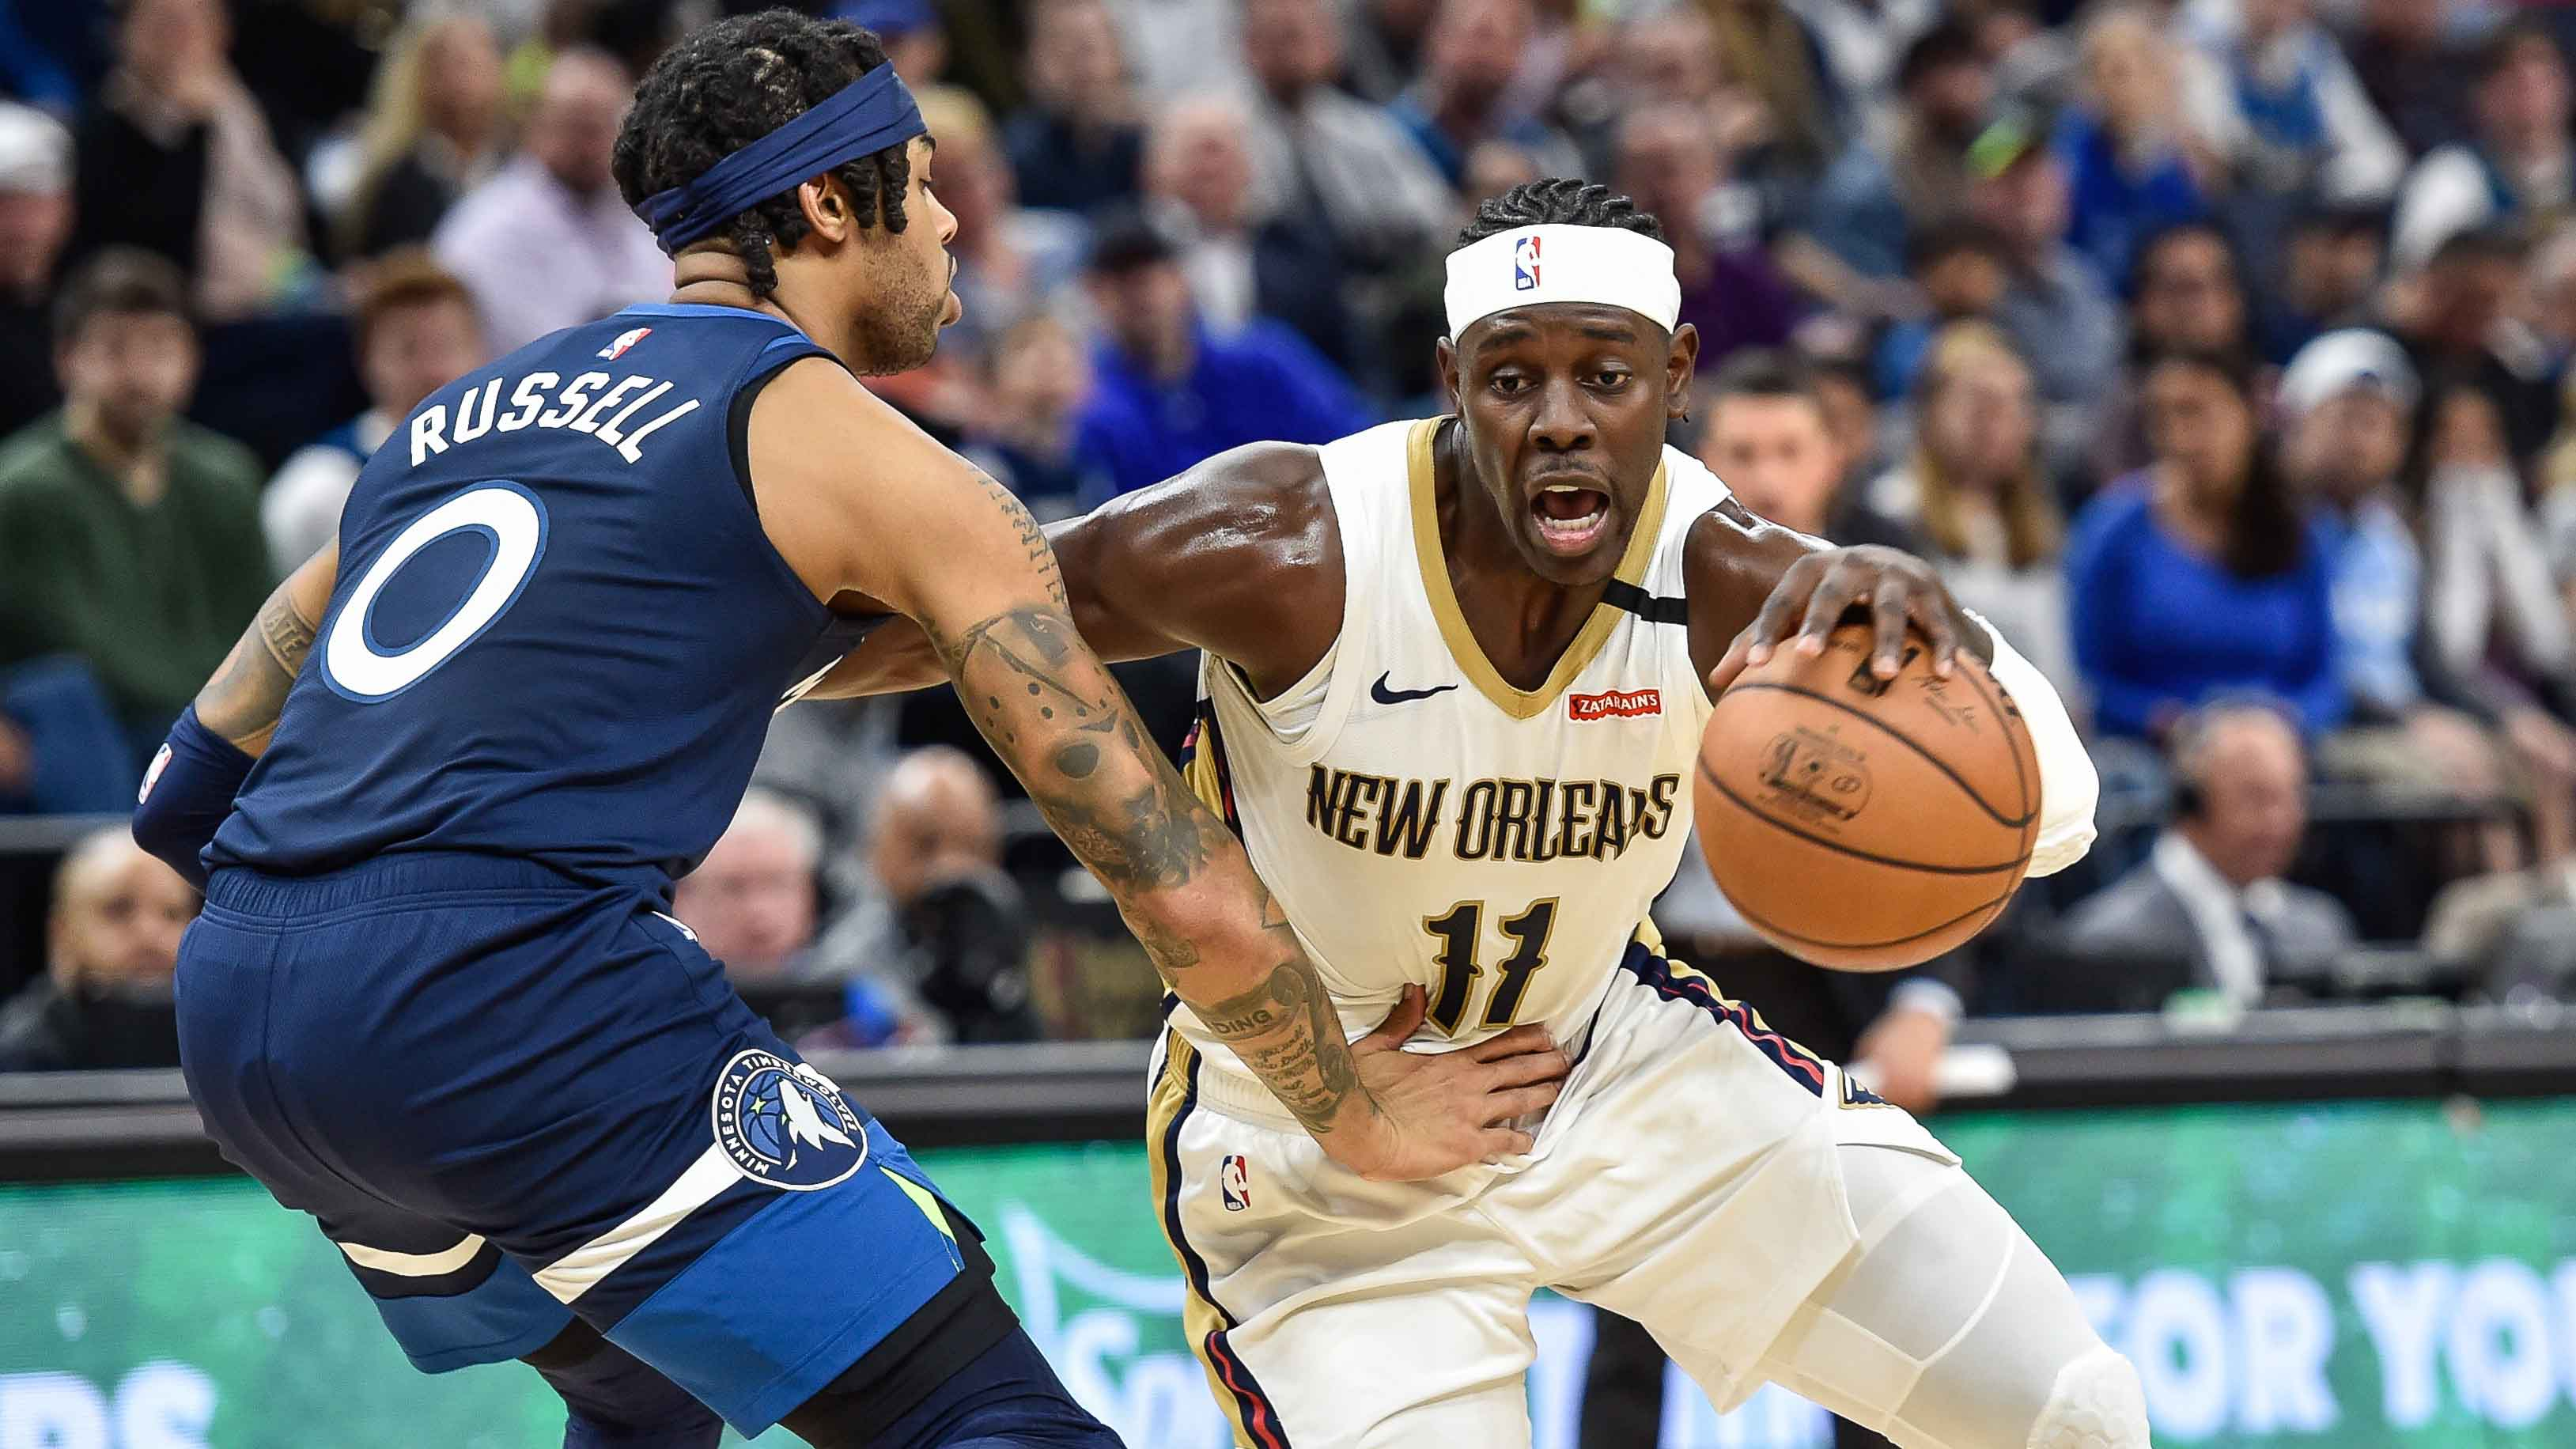 Nightly Notable: Jrue Holiday | March 8